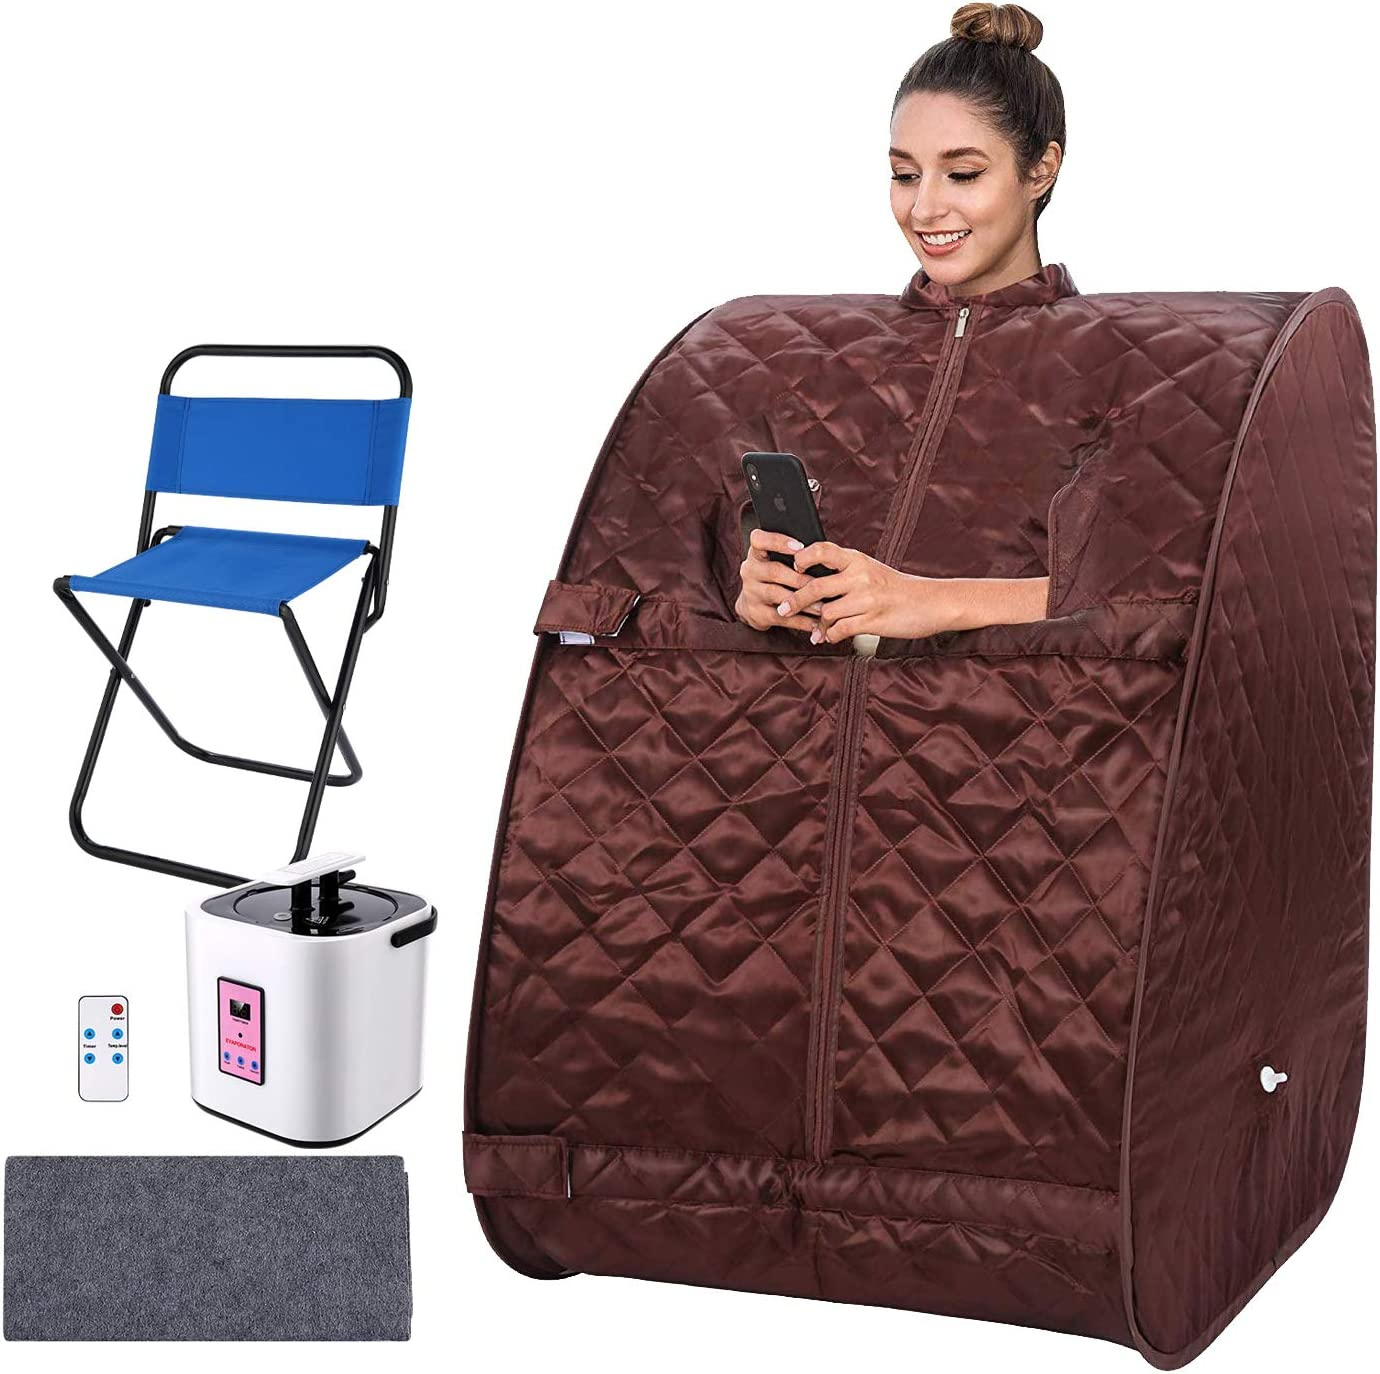 Portable Home 2L Steam Sauna with Remote Control,Indoor Foldable Steam Sauna Tent Spa Pot Loss Weight Detox Relaxation with Foldable Chair Timer Coffee